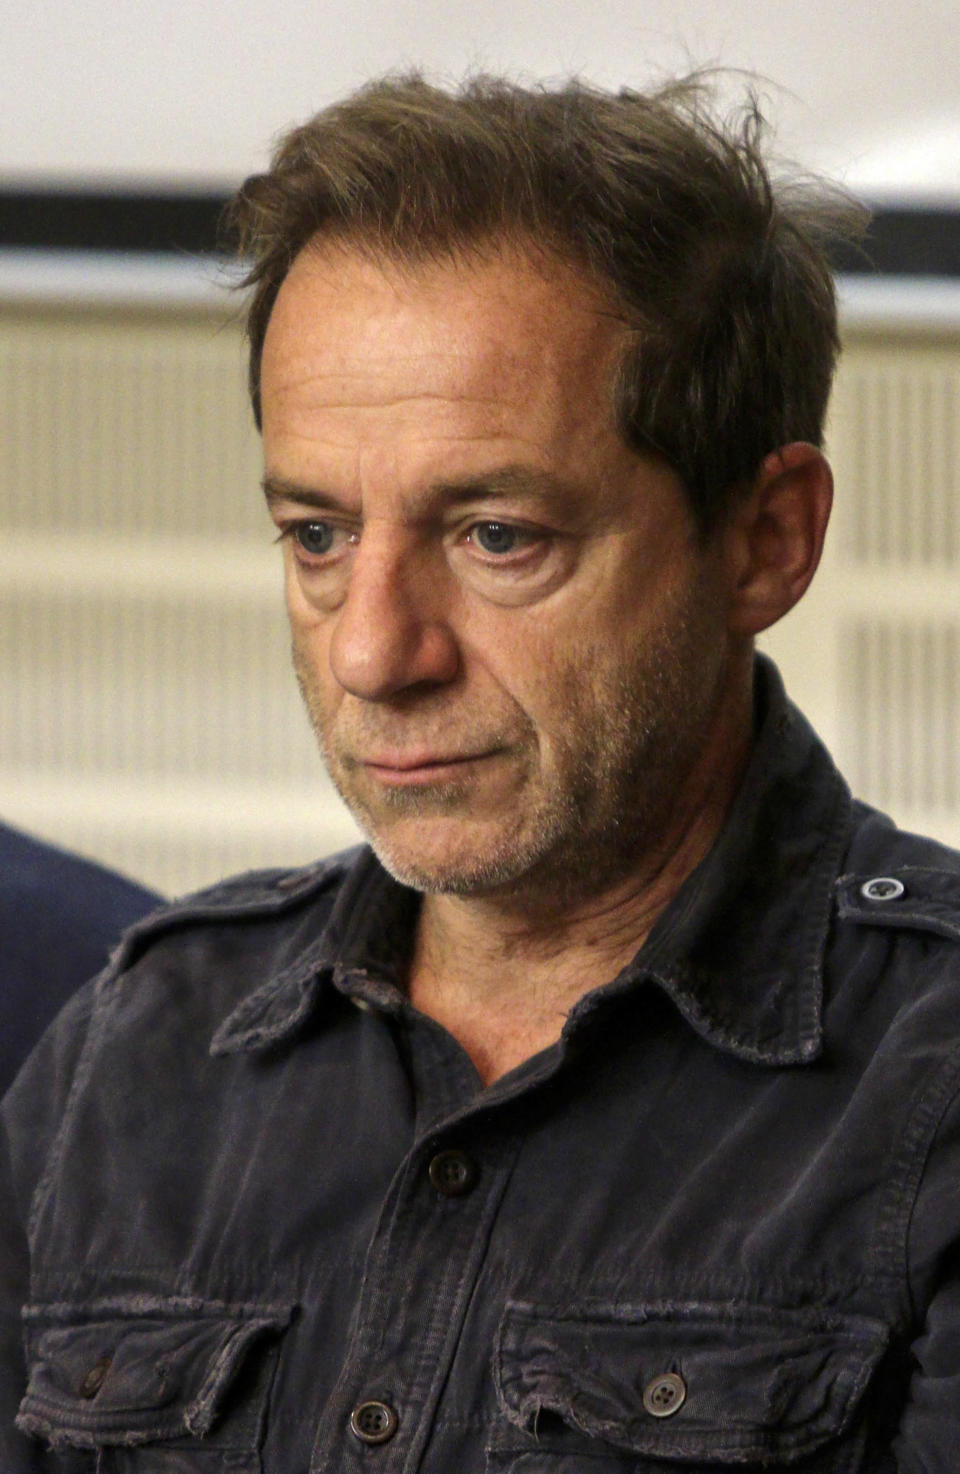 FILE - In this Tuesday, Oct.16, 2018, file photo, Dimitris Lignadis, actor and director, attends a news conference in Athens. On Saturday afternoon, Feb. 20, 2021, Lignadis, 56, turned himself in at Athens police headquarters, police said, and held pending an appearance before a magistrate. Lignadis has denied rape charges. (Christos Doudoumis/InTime News via AP, File)